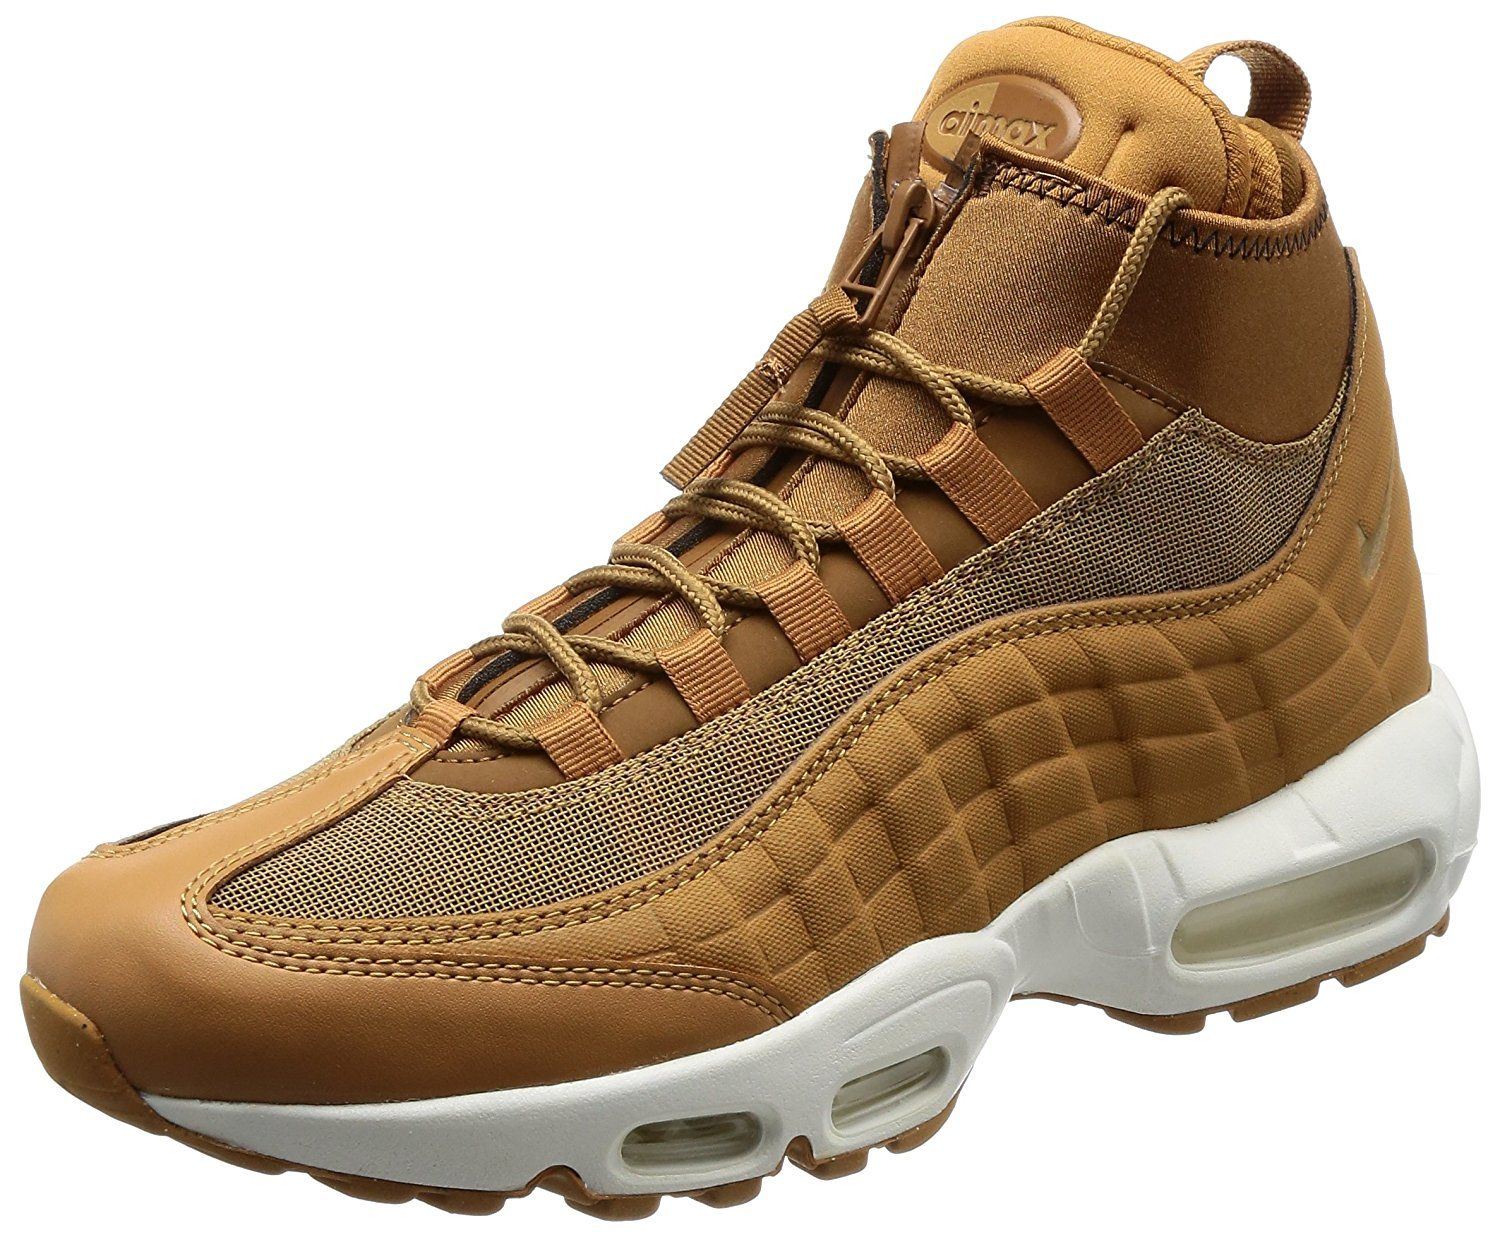 Nike Air Max 95 LeatherTextile Brown Sneaker Boot: Amazon